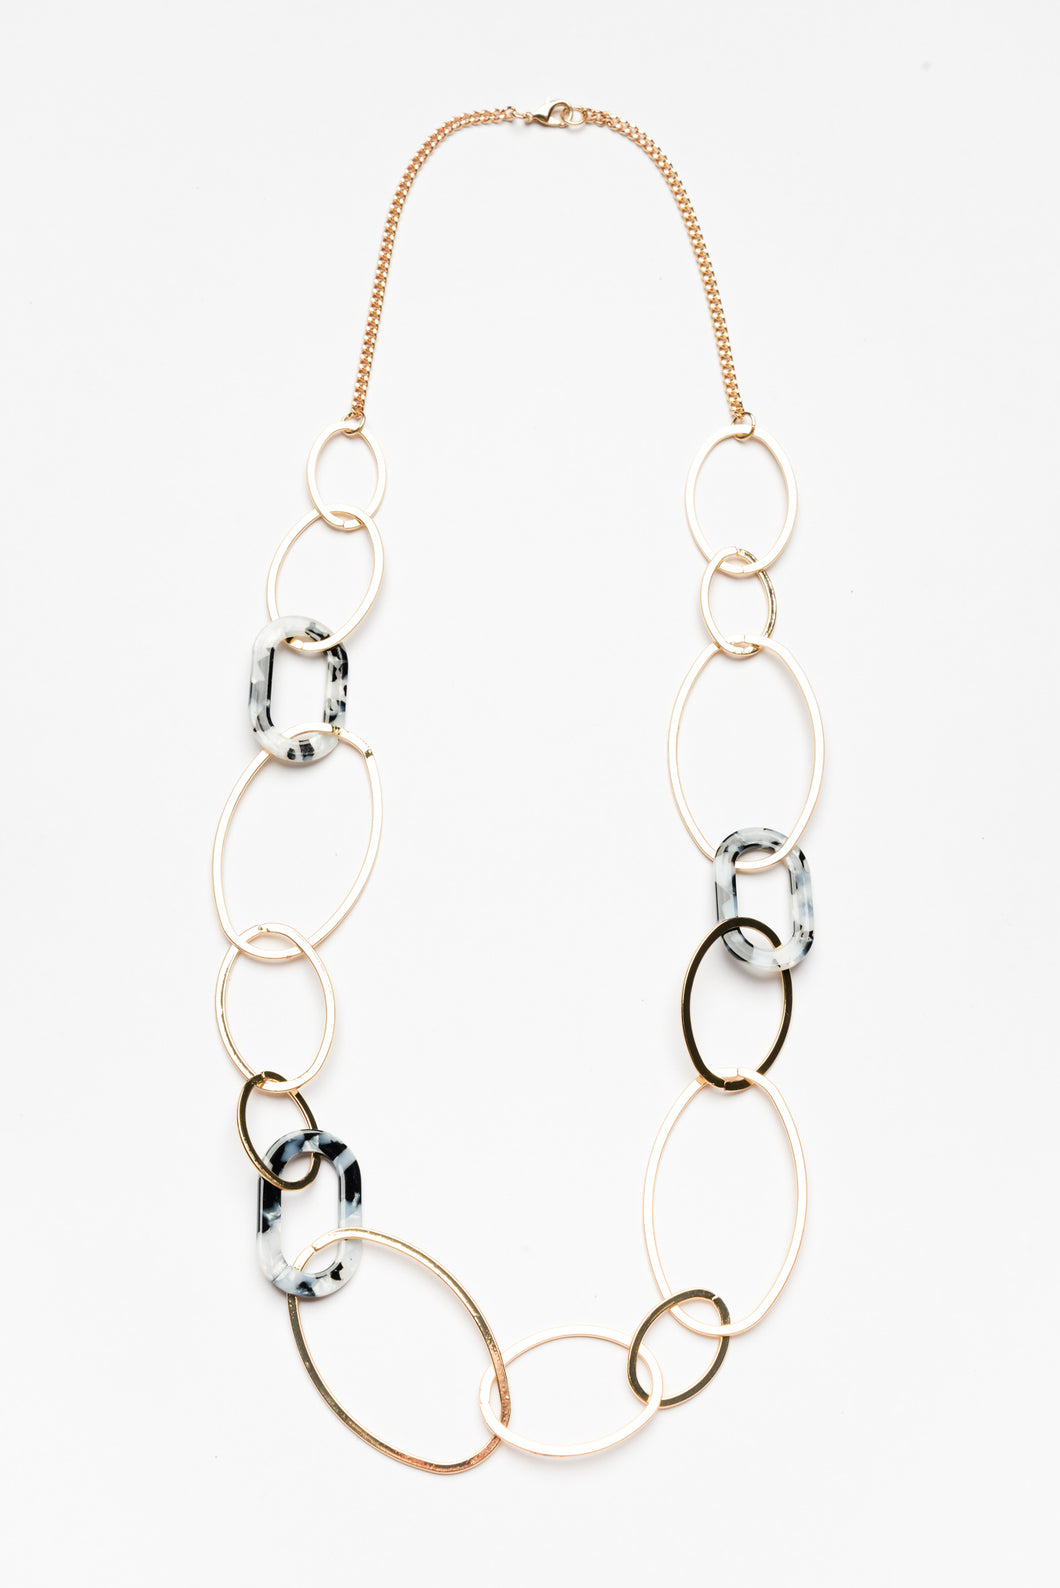 Gold and Marble Link Necklace - Blue Bungalow